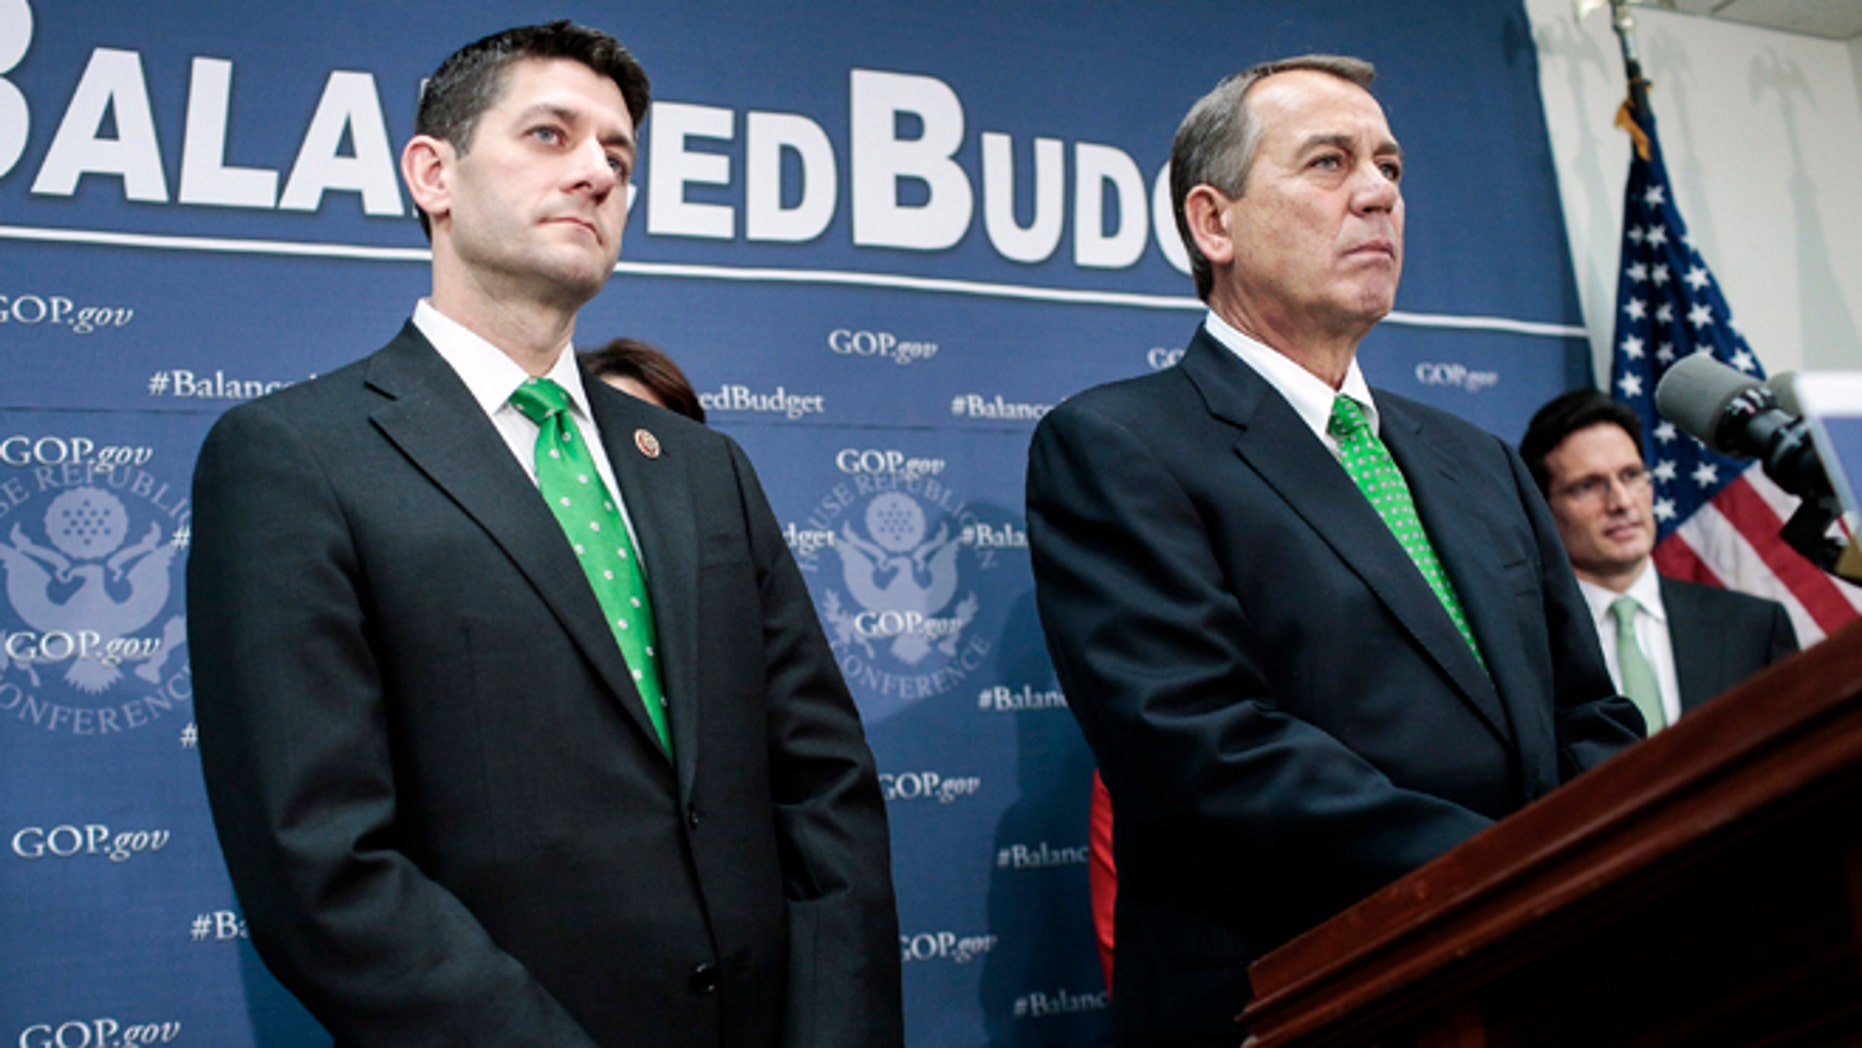 WASHINGTON, DC - MARCH 19: Rep. Paul Ryan (R-WI) (L) and House Speaker John Boehner (R-OH) listen to a question as House Republican leaders address the media after a party conference on March 19, 2013 in Washington, DC. GOP leaders asked that the president work with them to create a balanced budget plan, citing President Clinton's efforts to work with House Republicans on a budget in the 1990s. (Photo by T.J. Kirkpatrick/Getty Images)